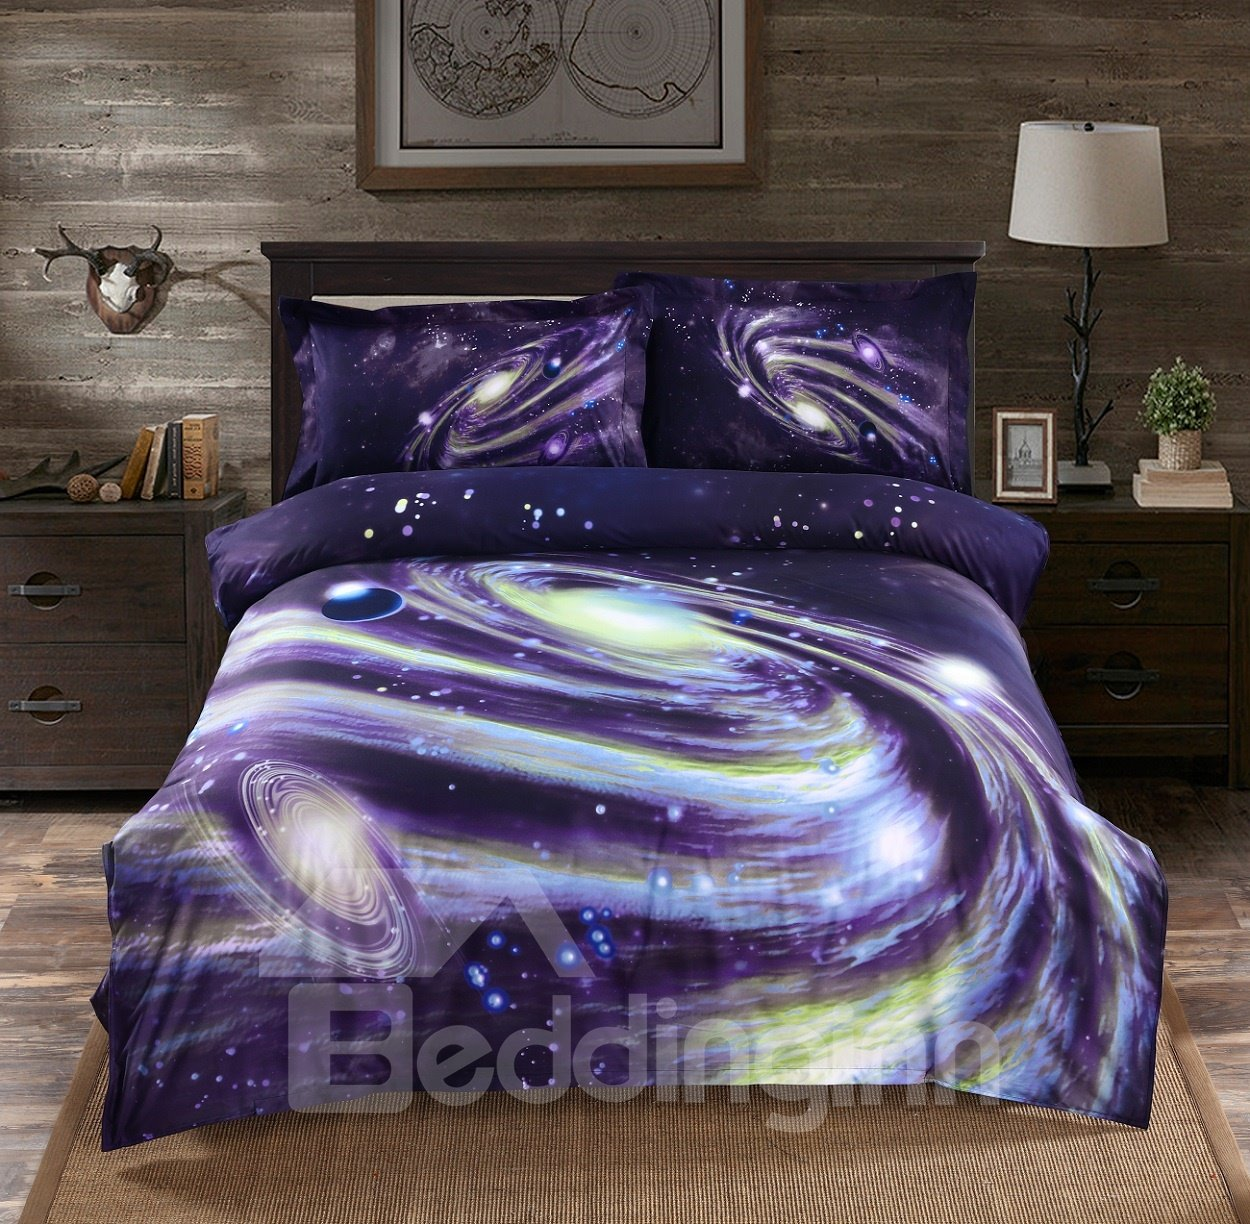 3D Galaxy Nebula Printed Polyester 4-Piece Bedding Sets/Duvet Covers